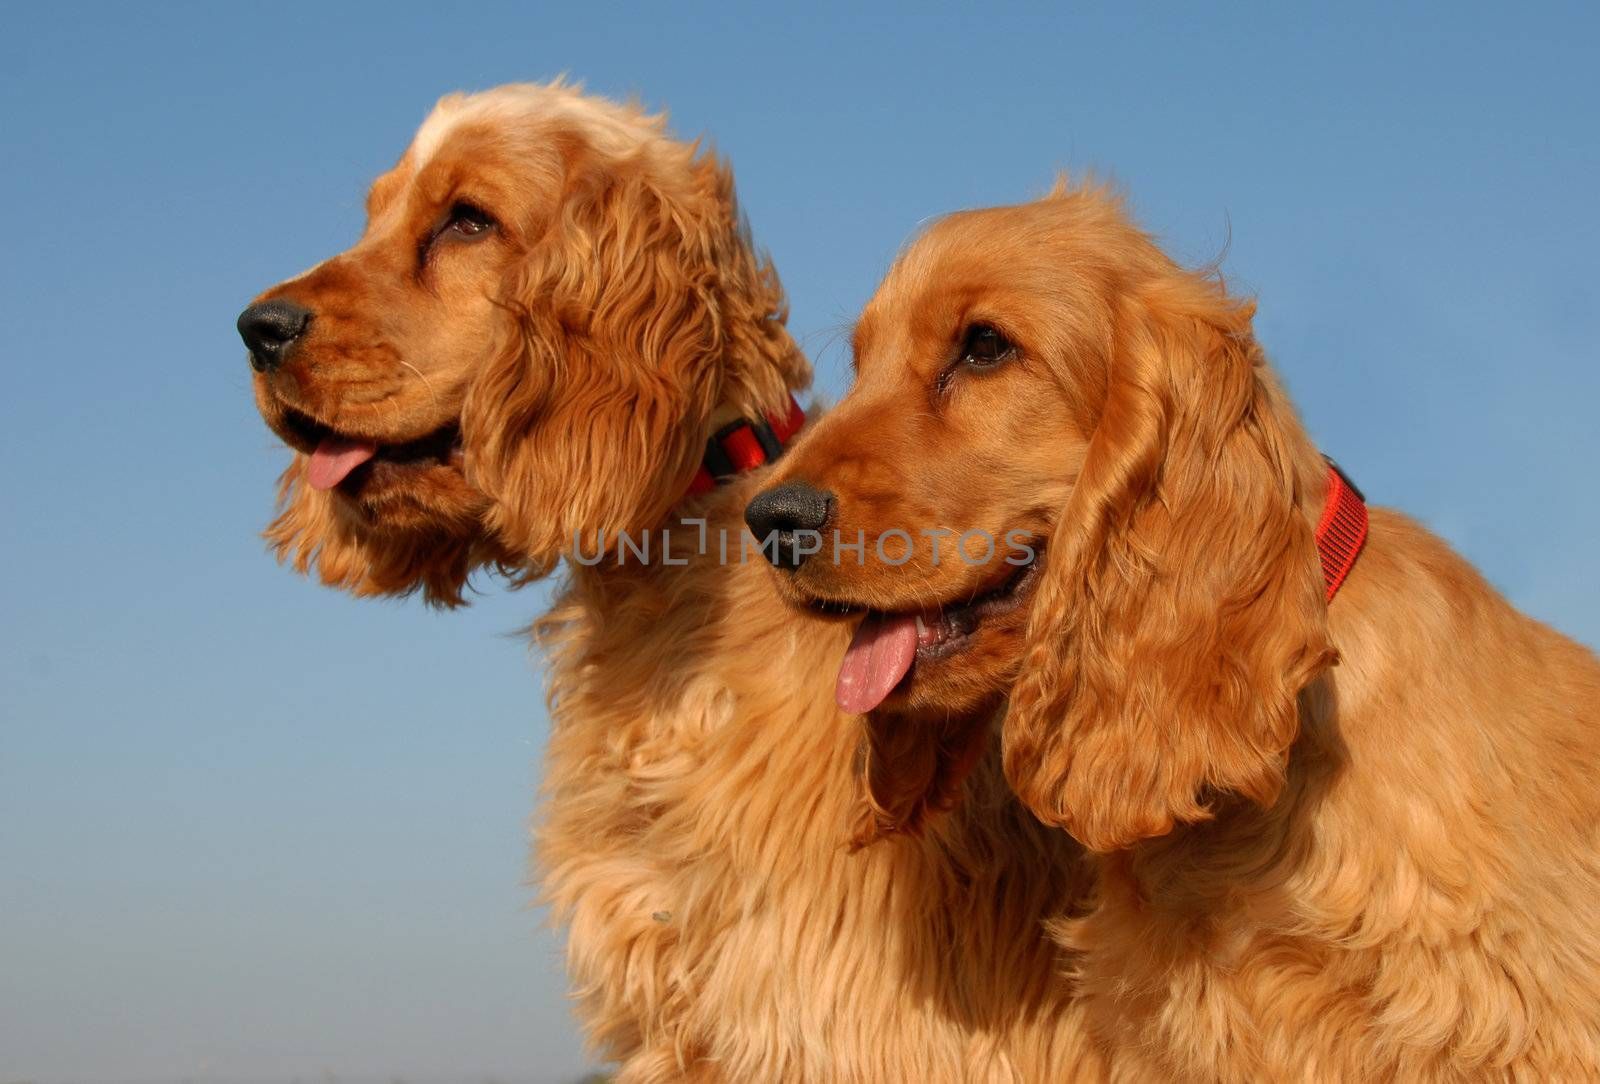 couple of puppies purebred english cocker: cute hunting dogs